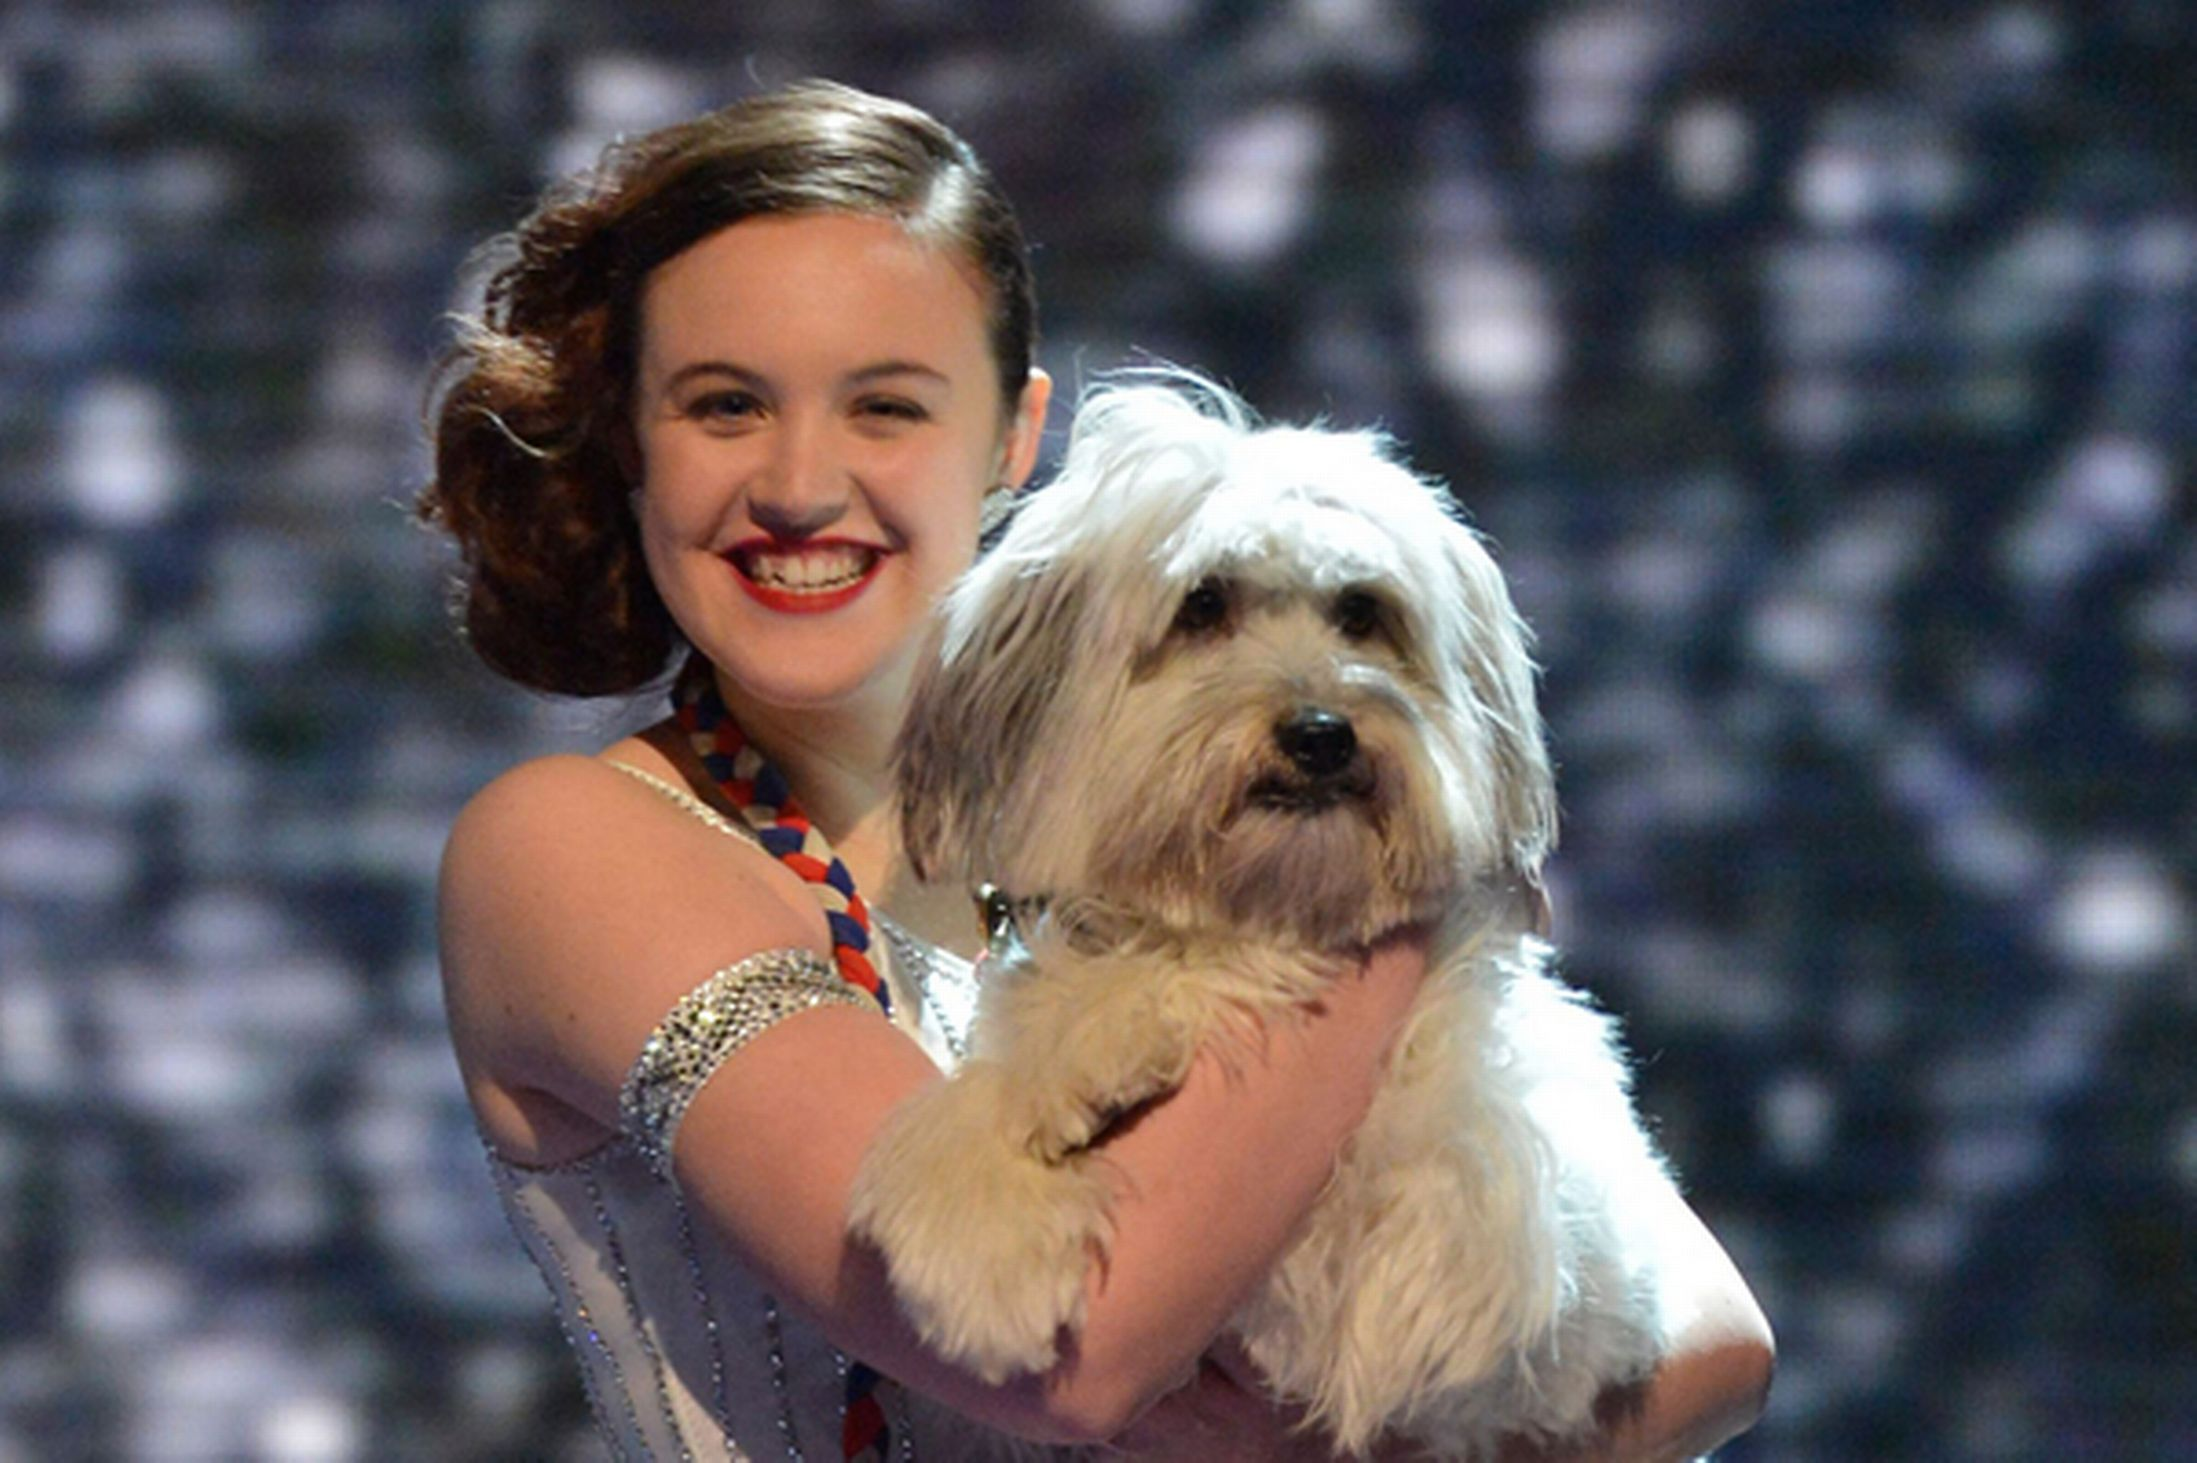 Pudsey from 'Ashleigh and Pudsey' has sadly died!